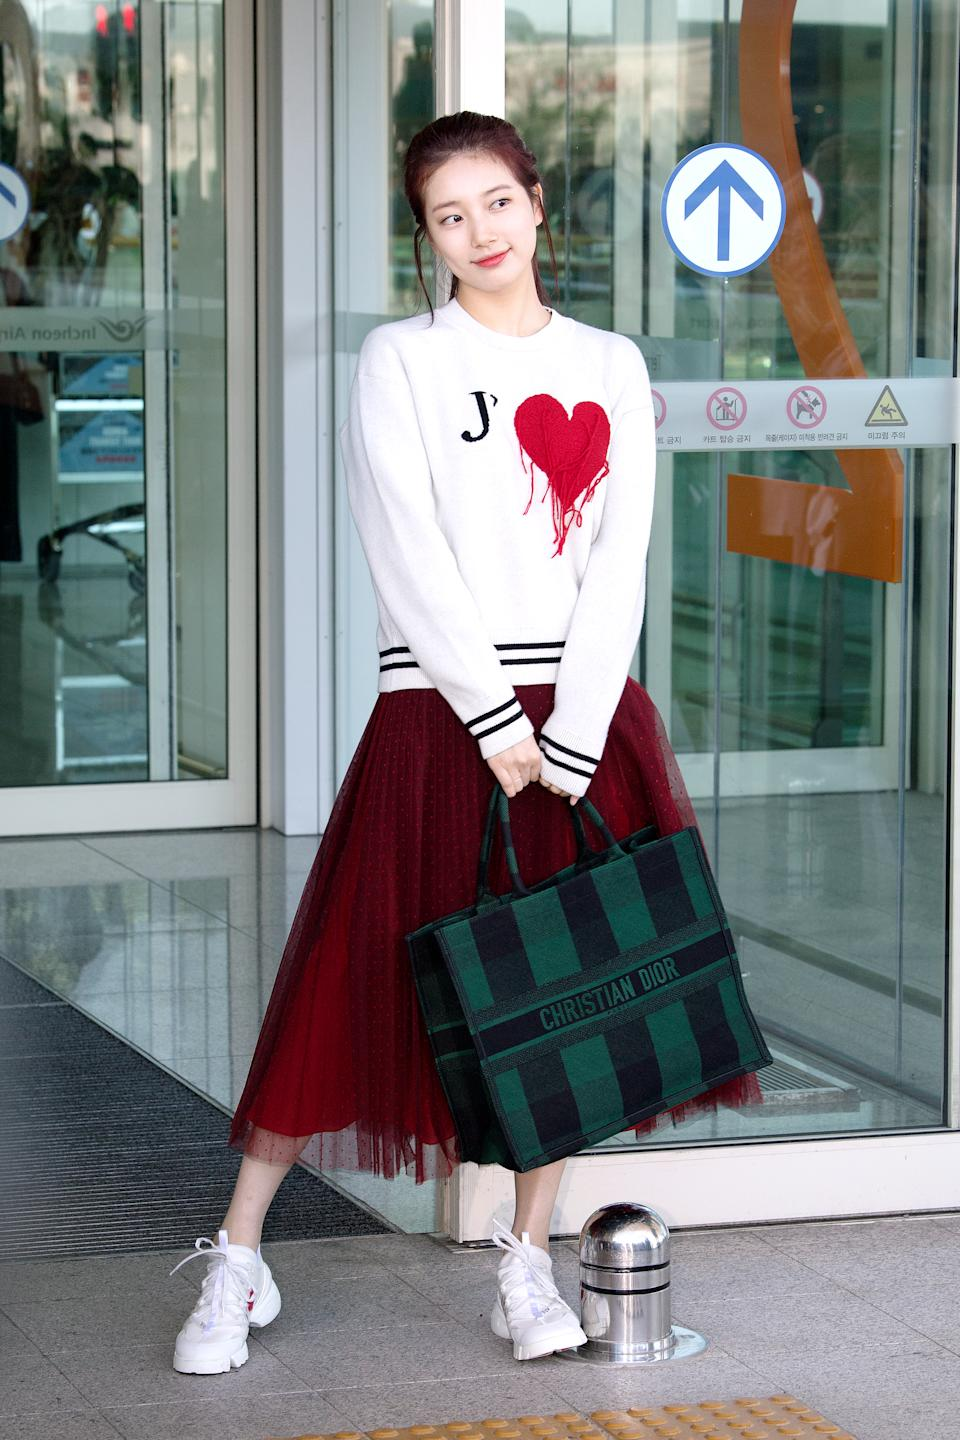 Korean celebrity Suzy Bae (@skuukzky) wearing Dior outfits, D-Connect sneakers and FW2019 Dior Book Tote bag. (PHOTO: Dior)